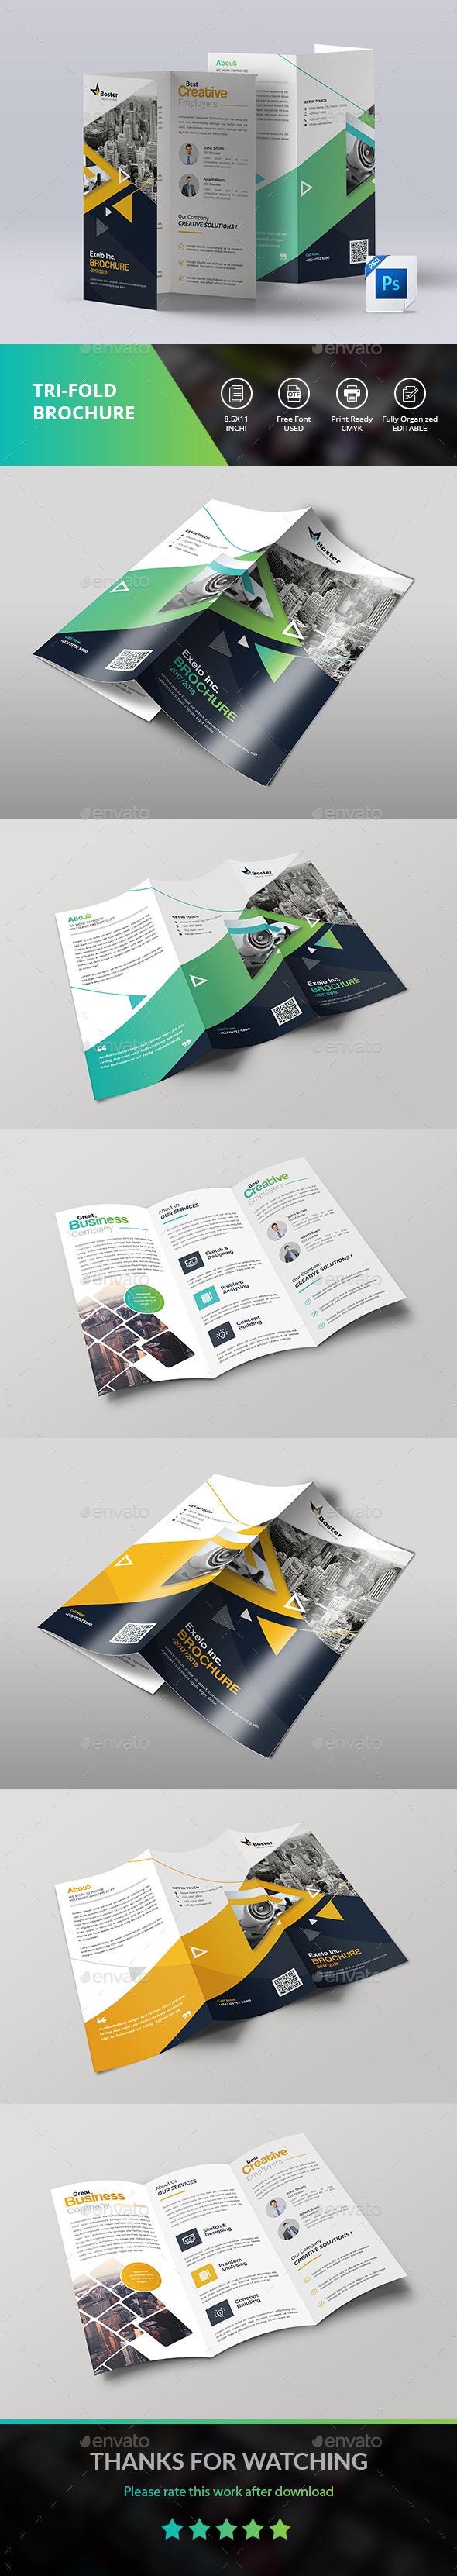 GraphicRiver Brochure 20959792